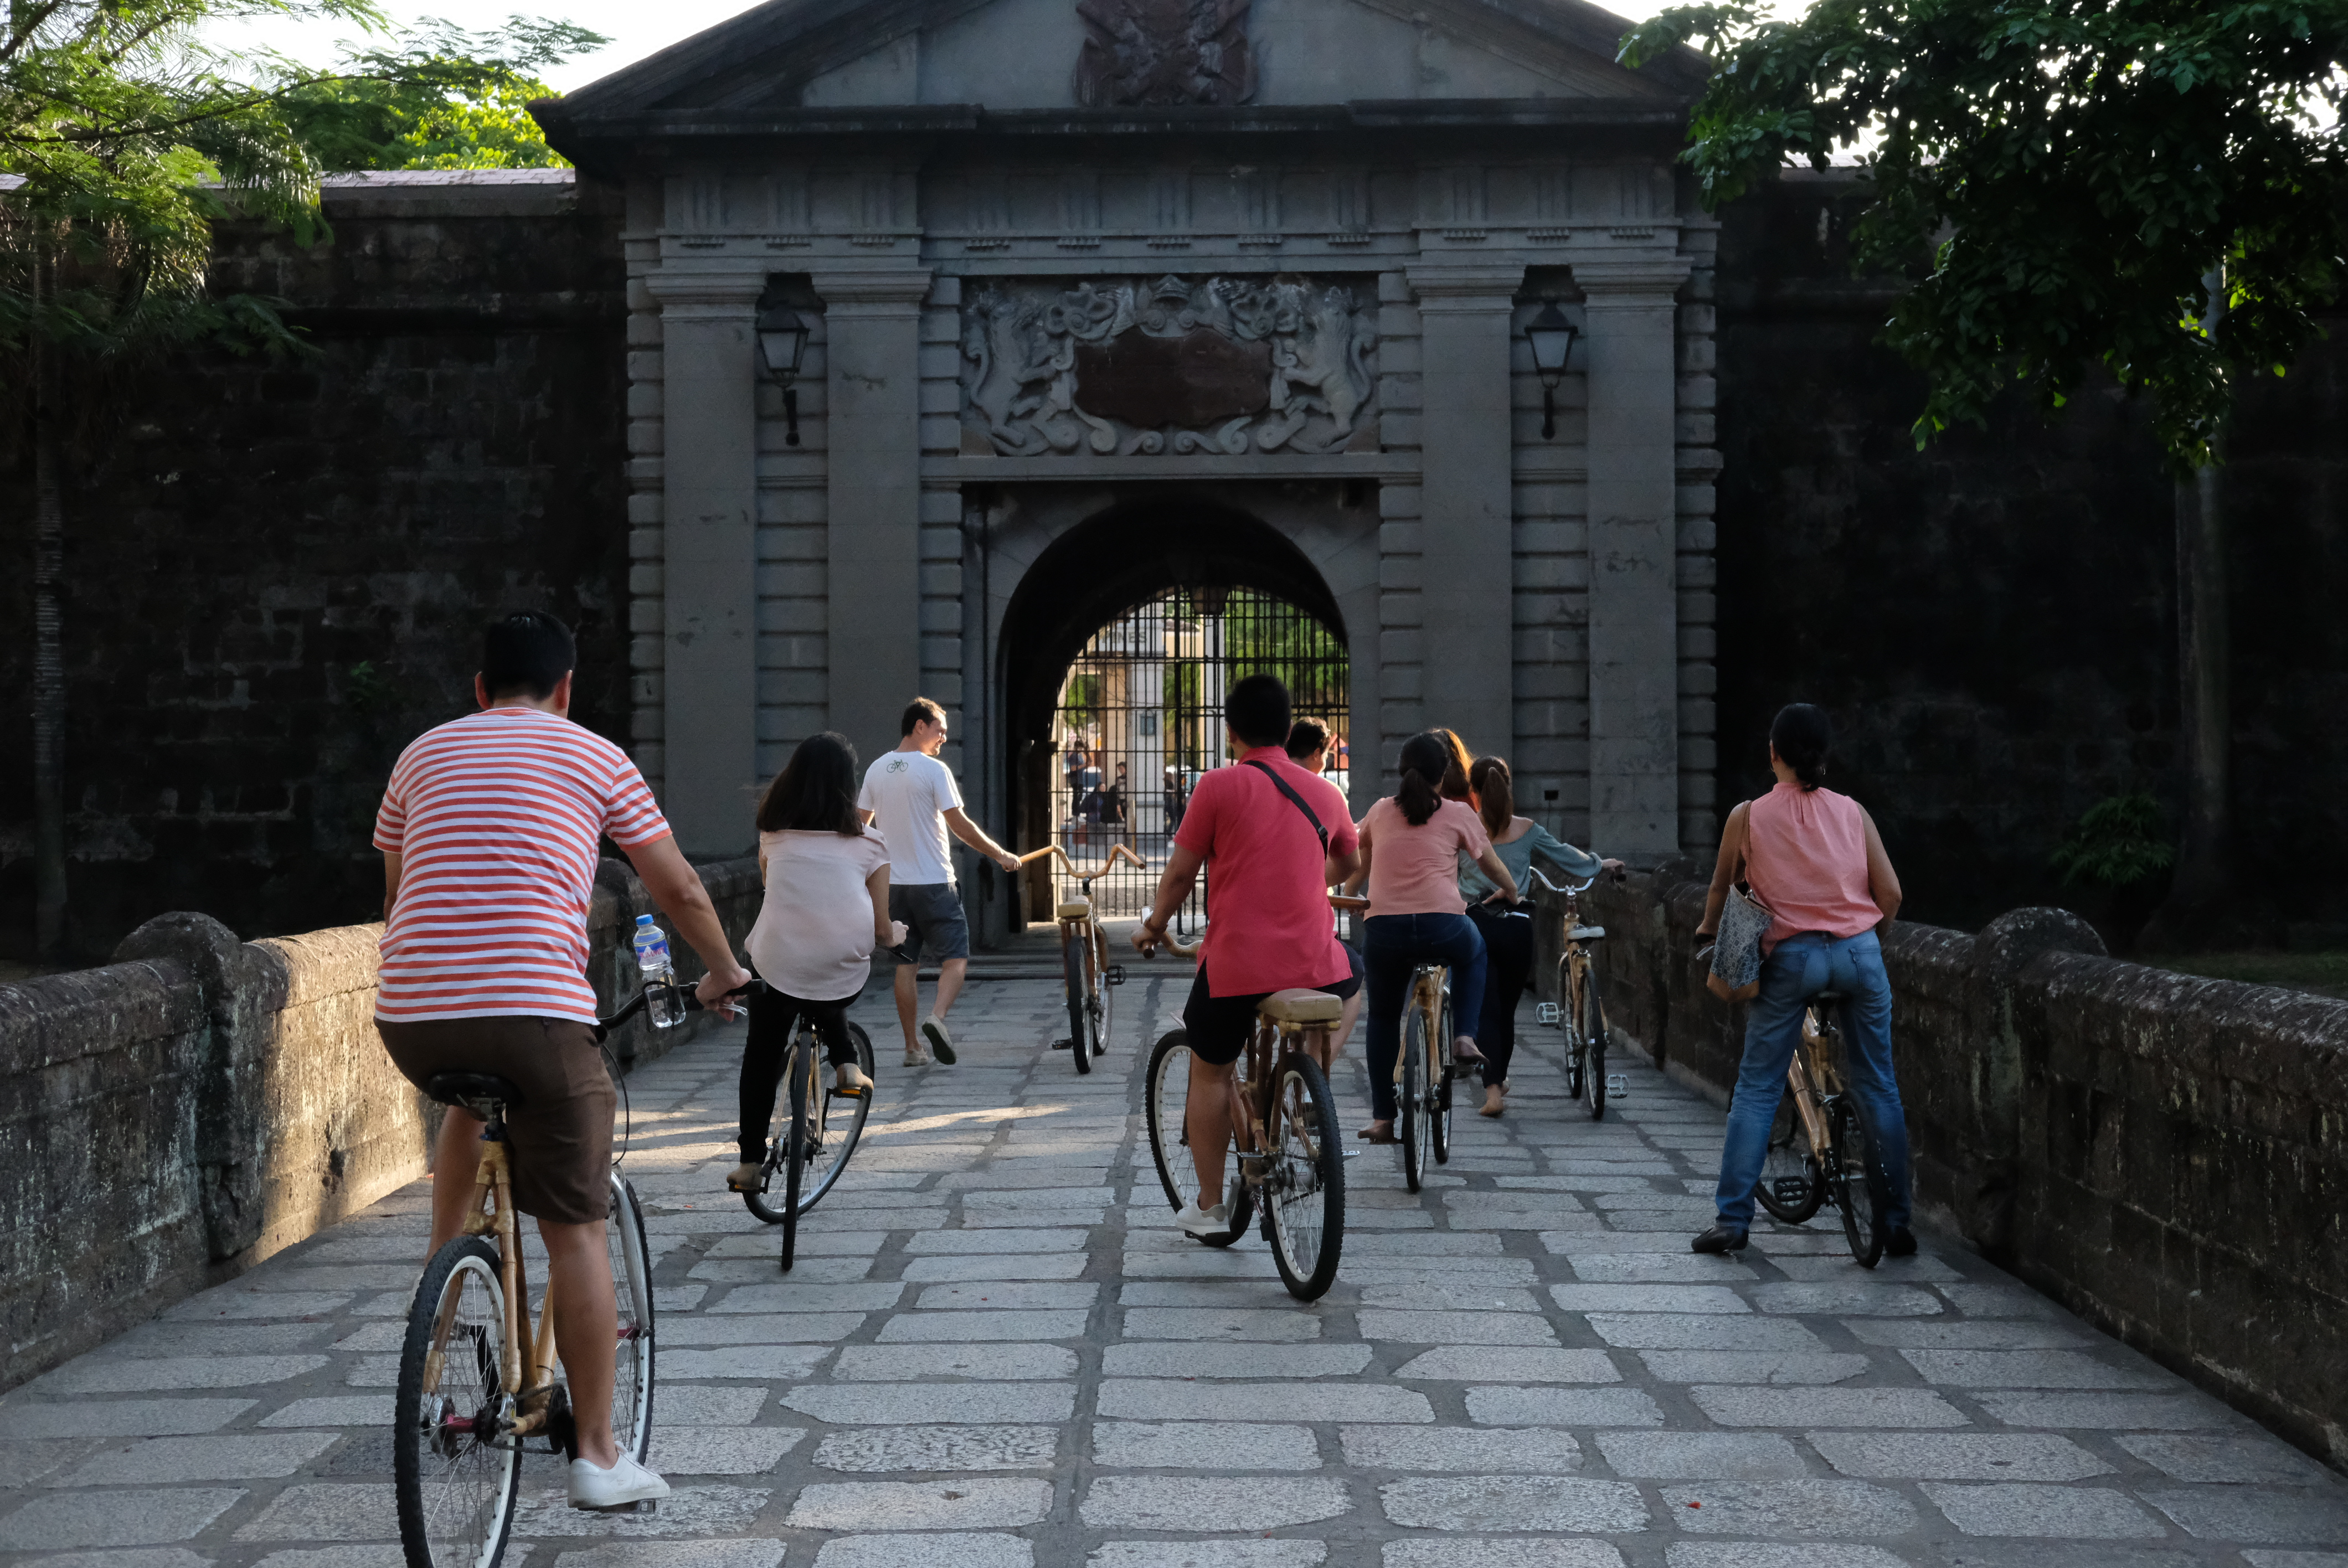 Bambike experience in Intramuros